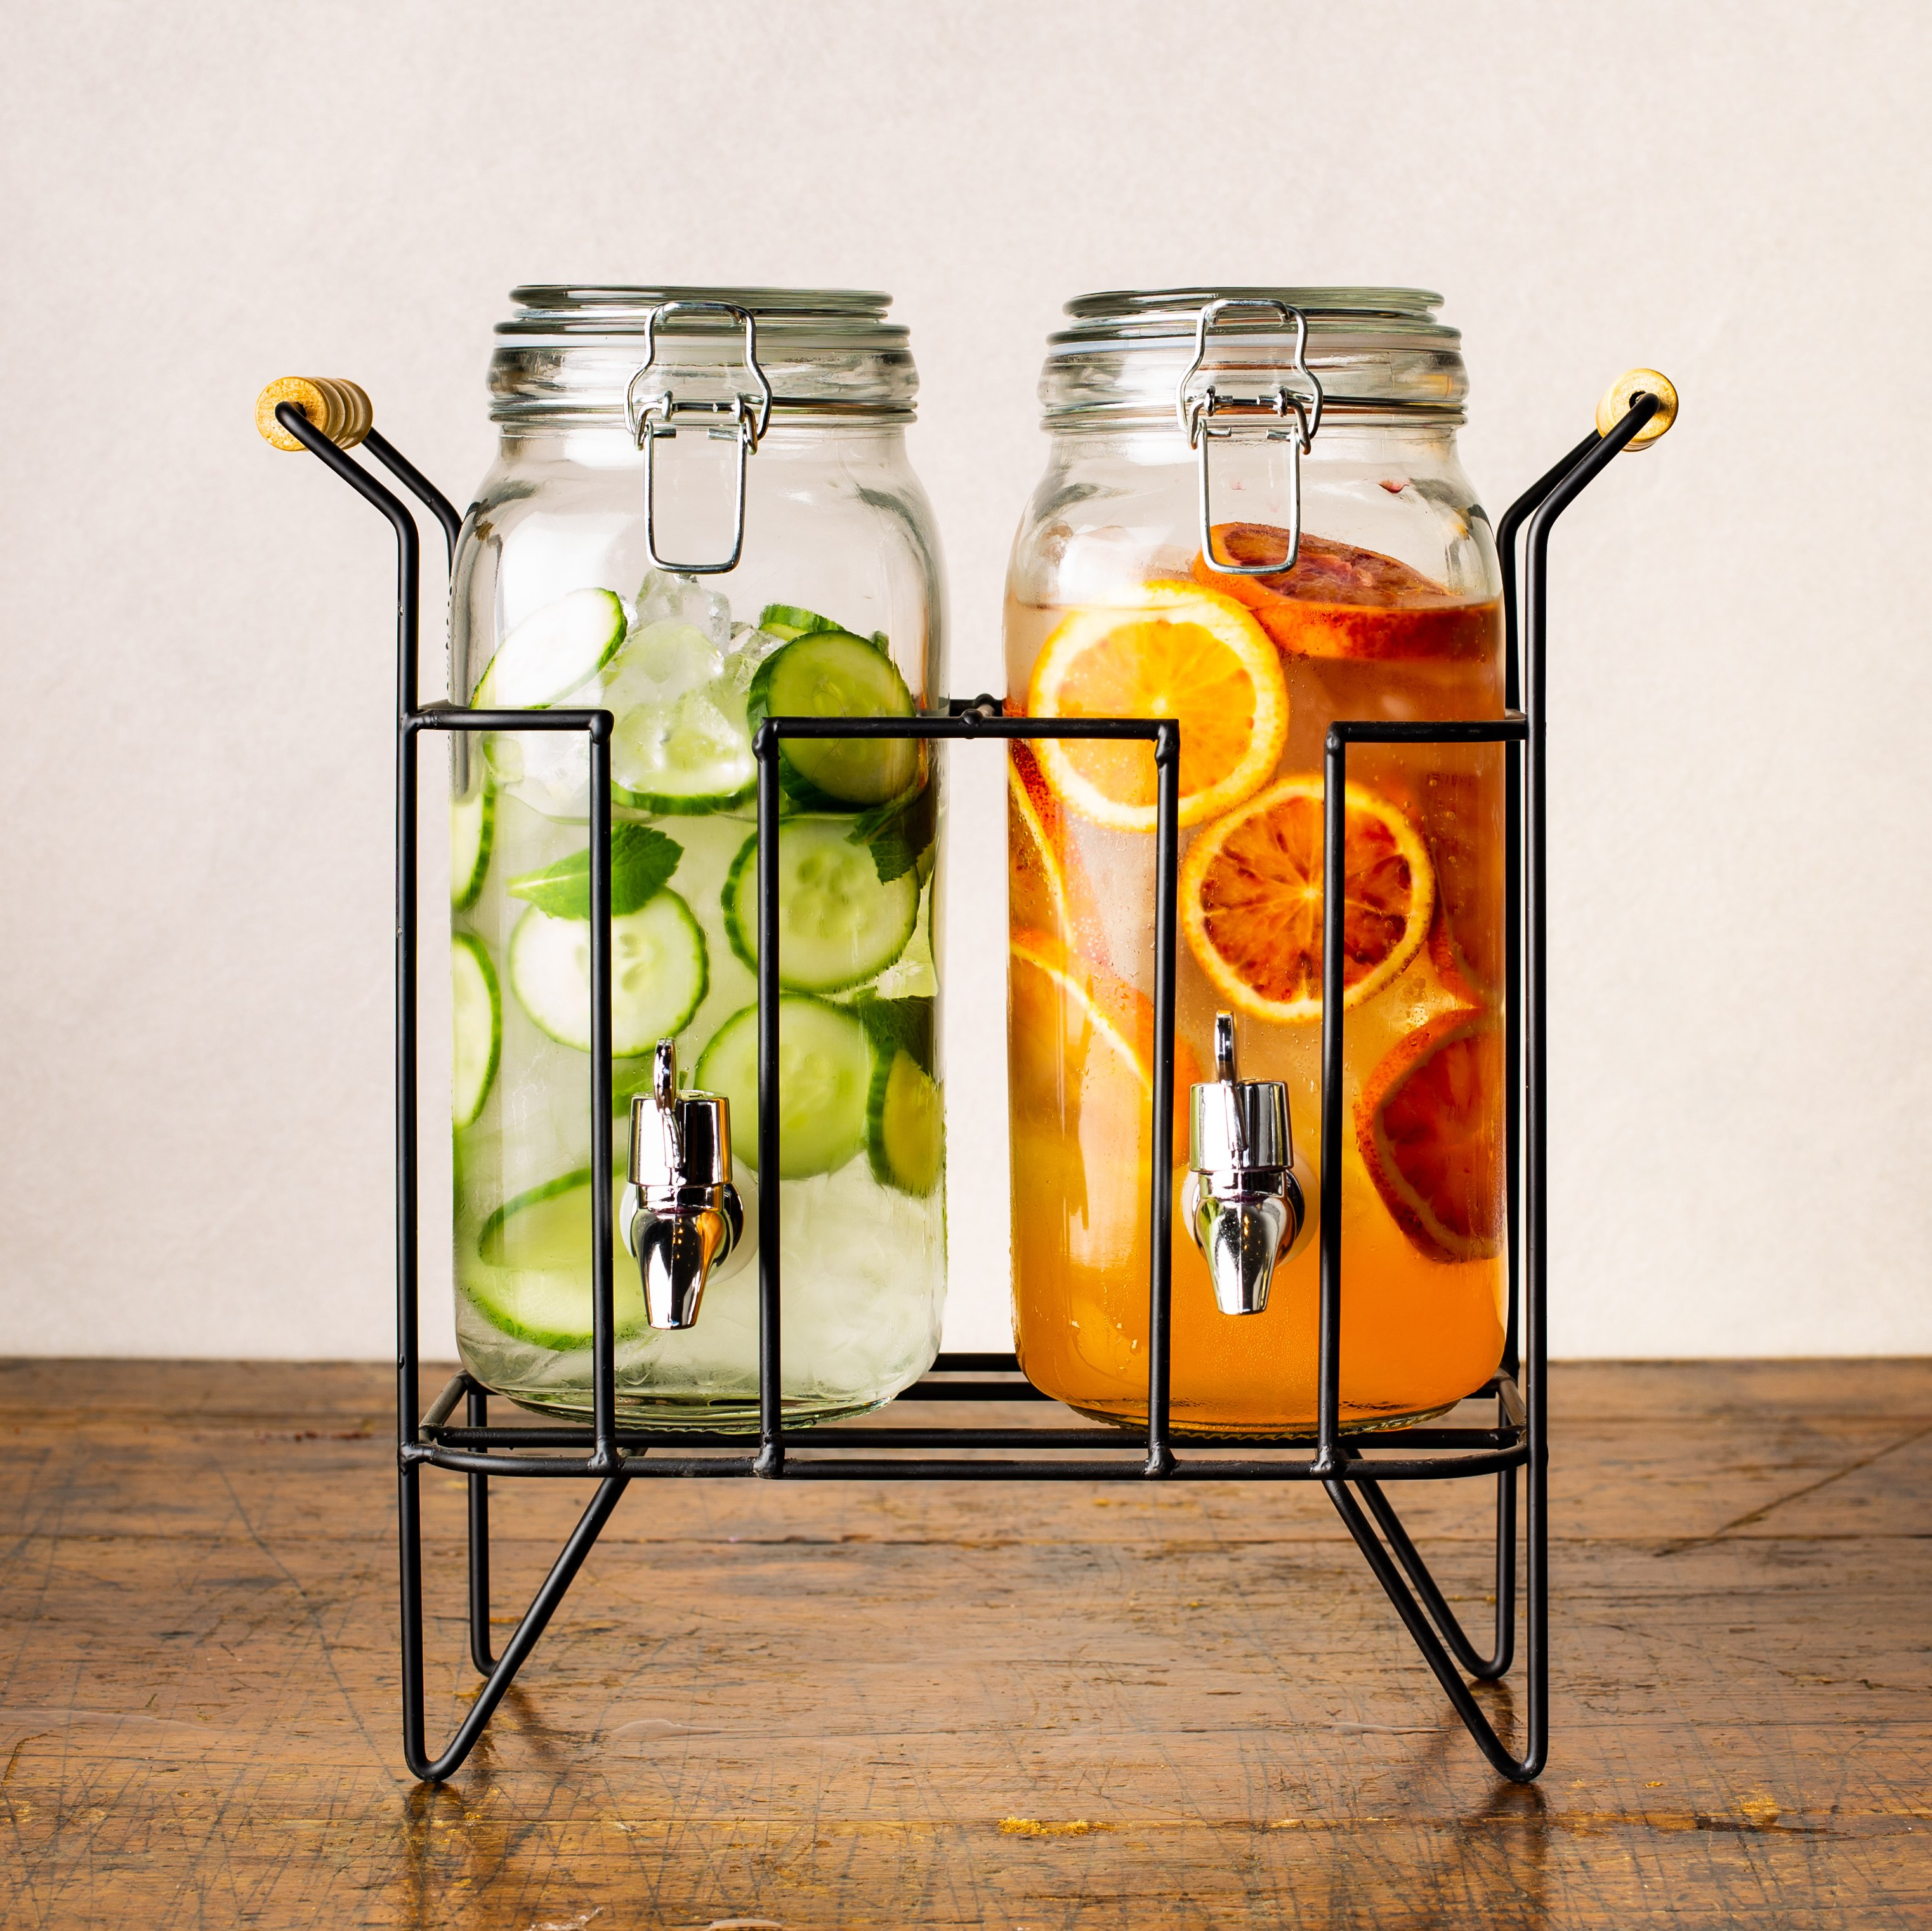 a set of two glass beverage dispenser on a stand, one dispenser filled with water, ice, cucumber, and mint, the other filled with juice and oranges